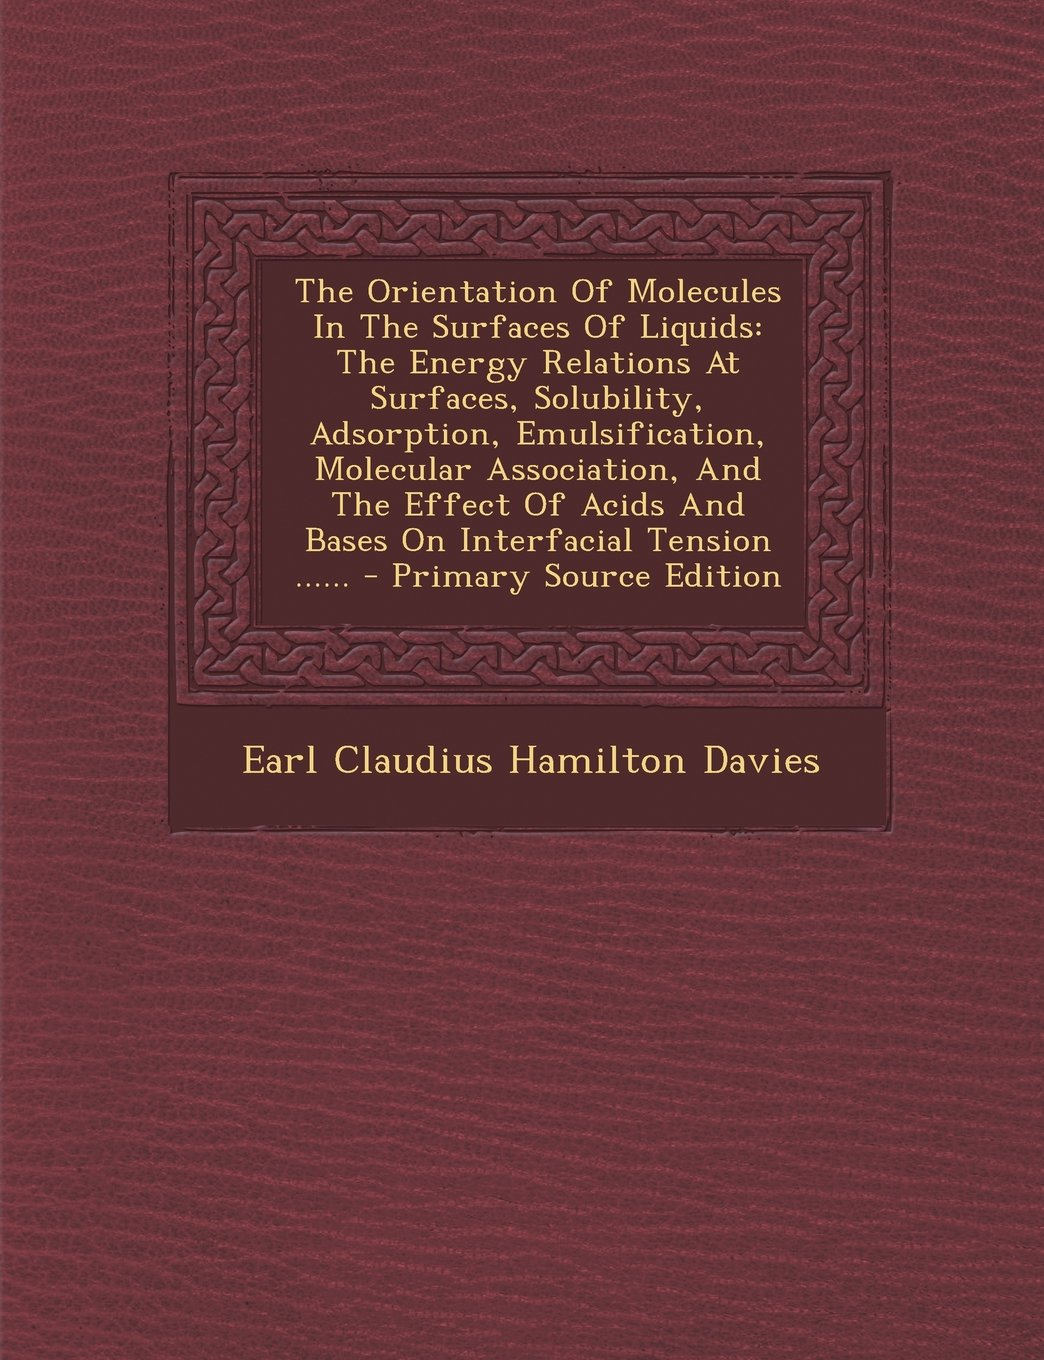 Read Online The Orientation Of Molecules In The Surfaces Of Liquids: The Energy Relations At Surfaces, Solubility, Adsorption, Emulsification, Molecular ... Tension ...... - Primary Source Edition ebook